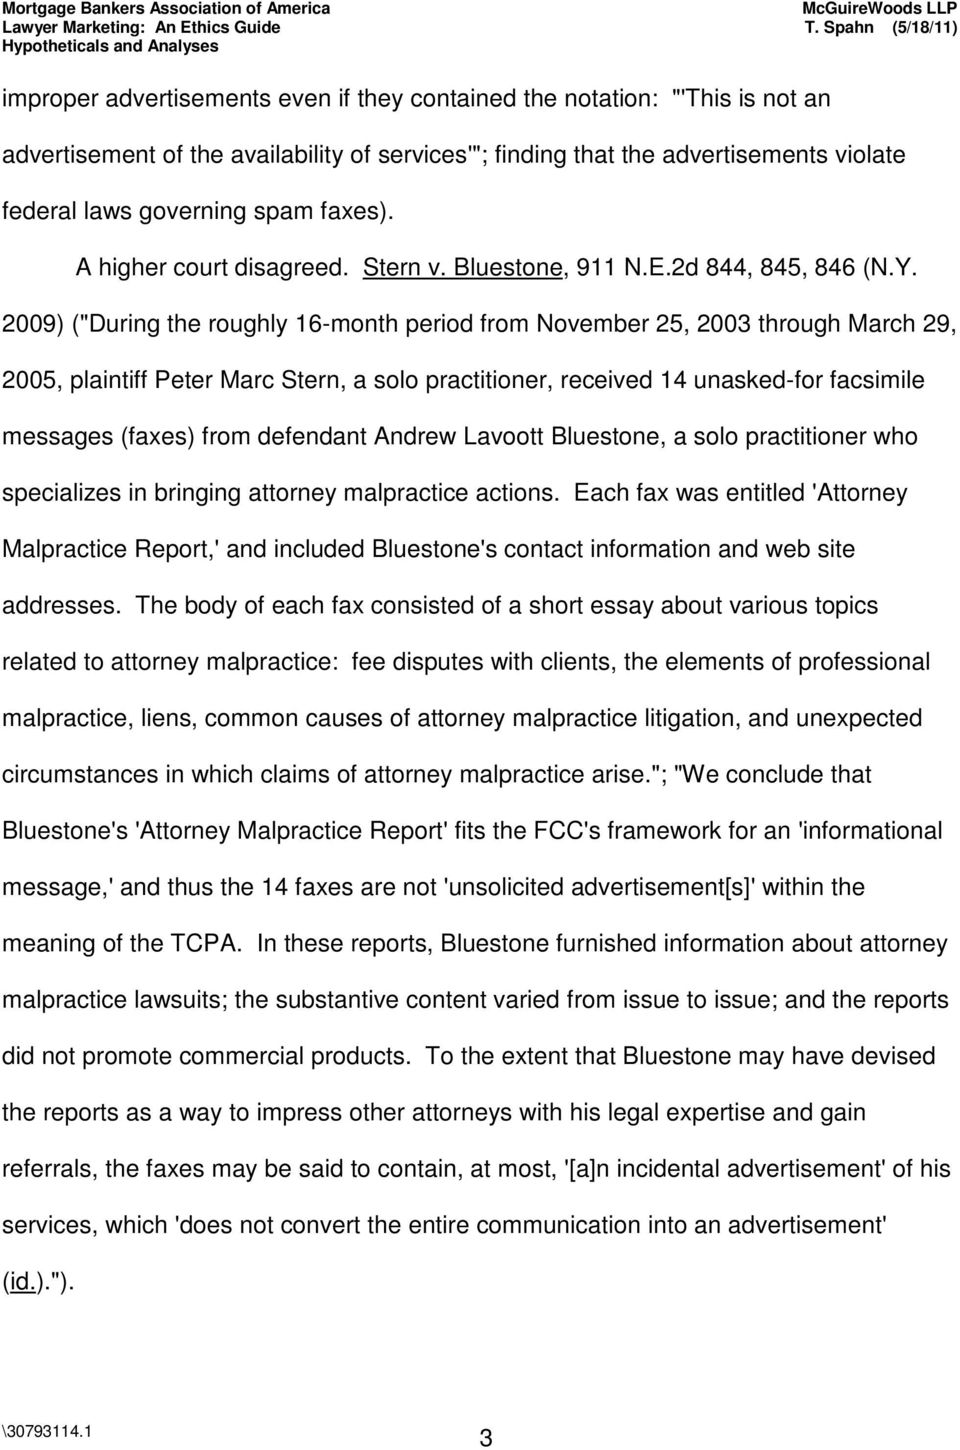 "2009) (""During the roughly 16-month period from November 25, 2003 through March 29, 2005, plaintiff Peter Marc Stern, a solo practitioner, received 14 unasked-for facsimile messages (faxes) from"